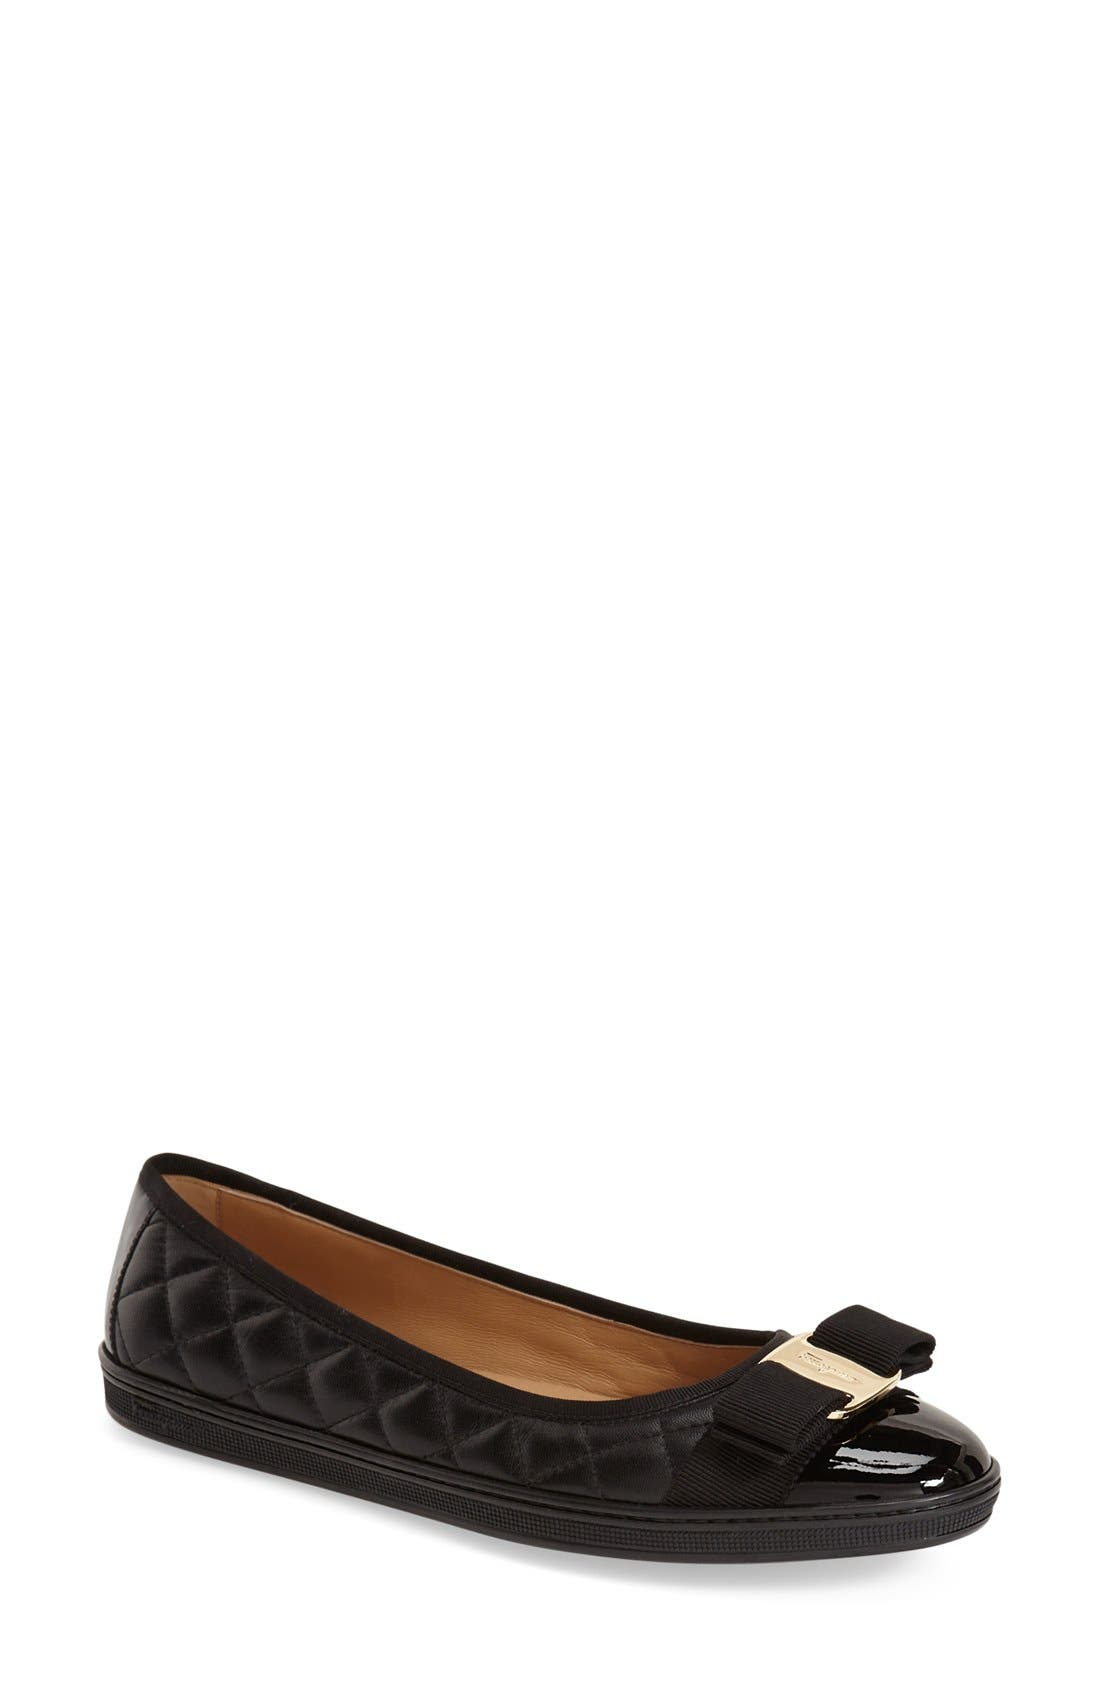 Alternate Image 1 Selected - Salvatore Ferragamo Quilted Skimmer Flat (Women)